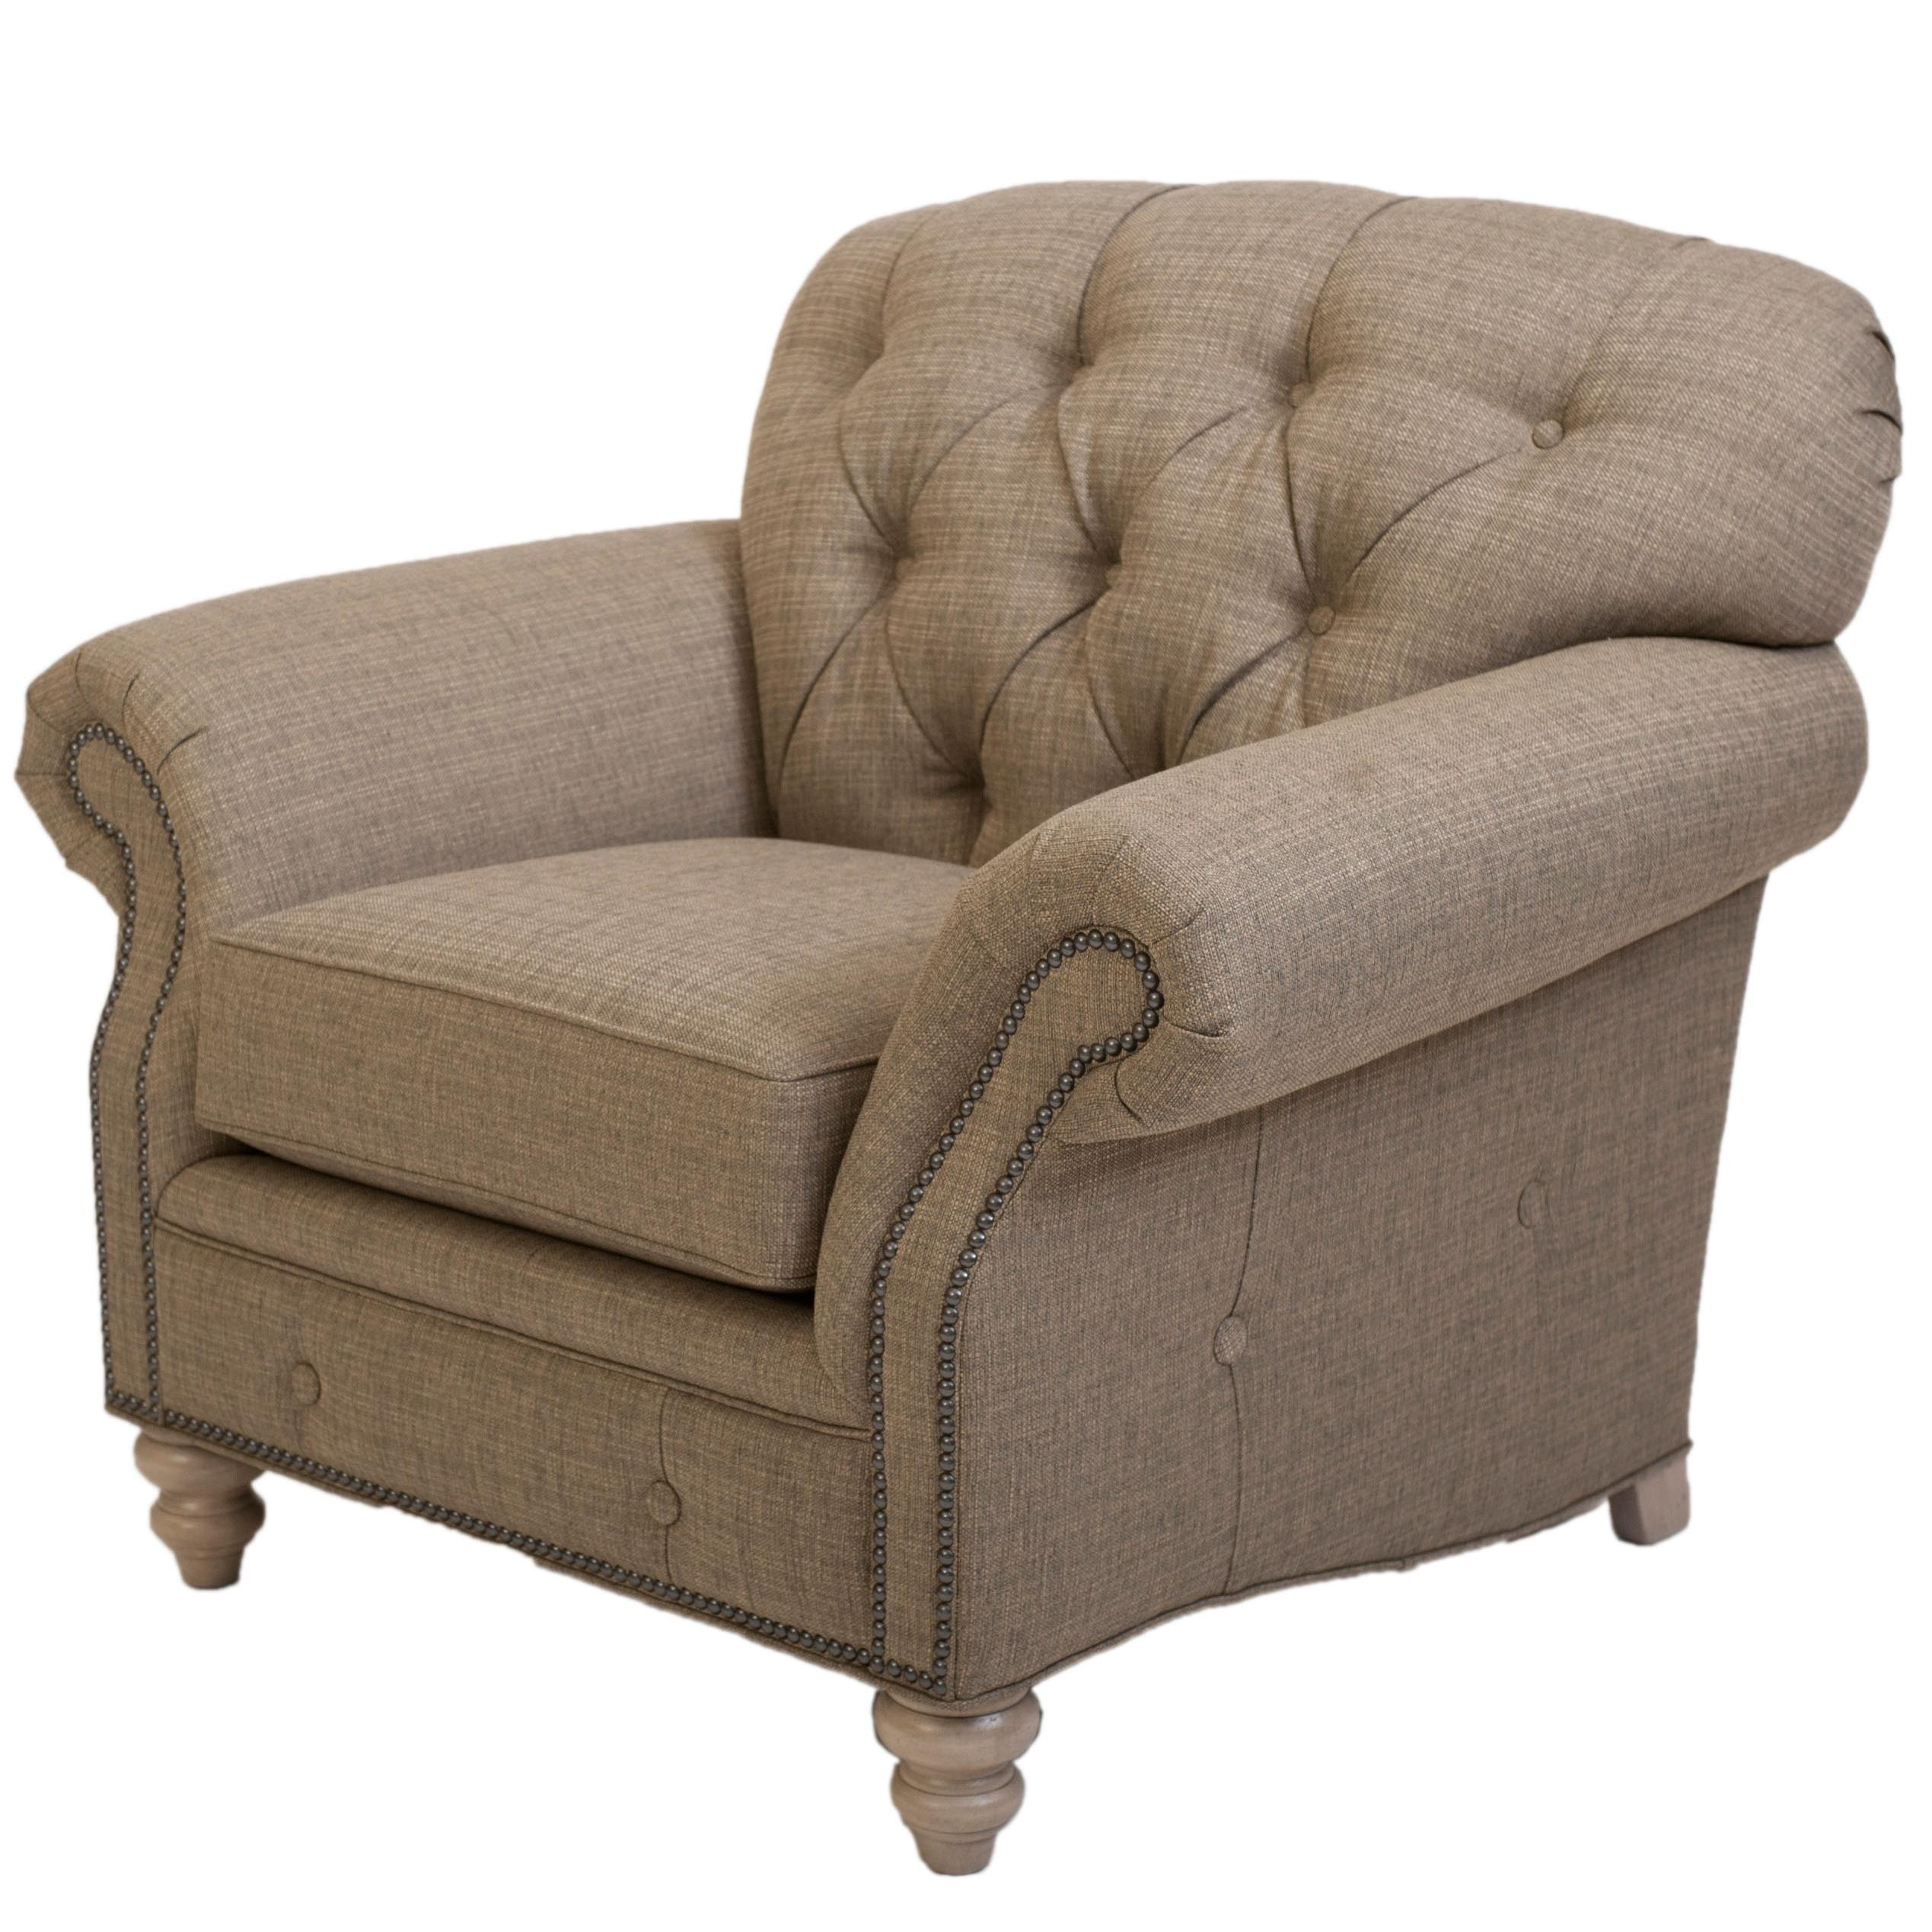 tufted nailhead chair office depot traditional button with trim by